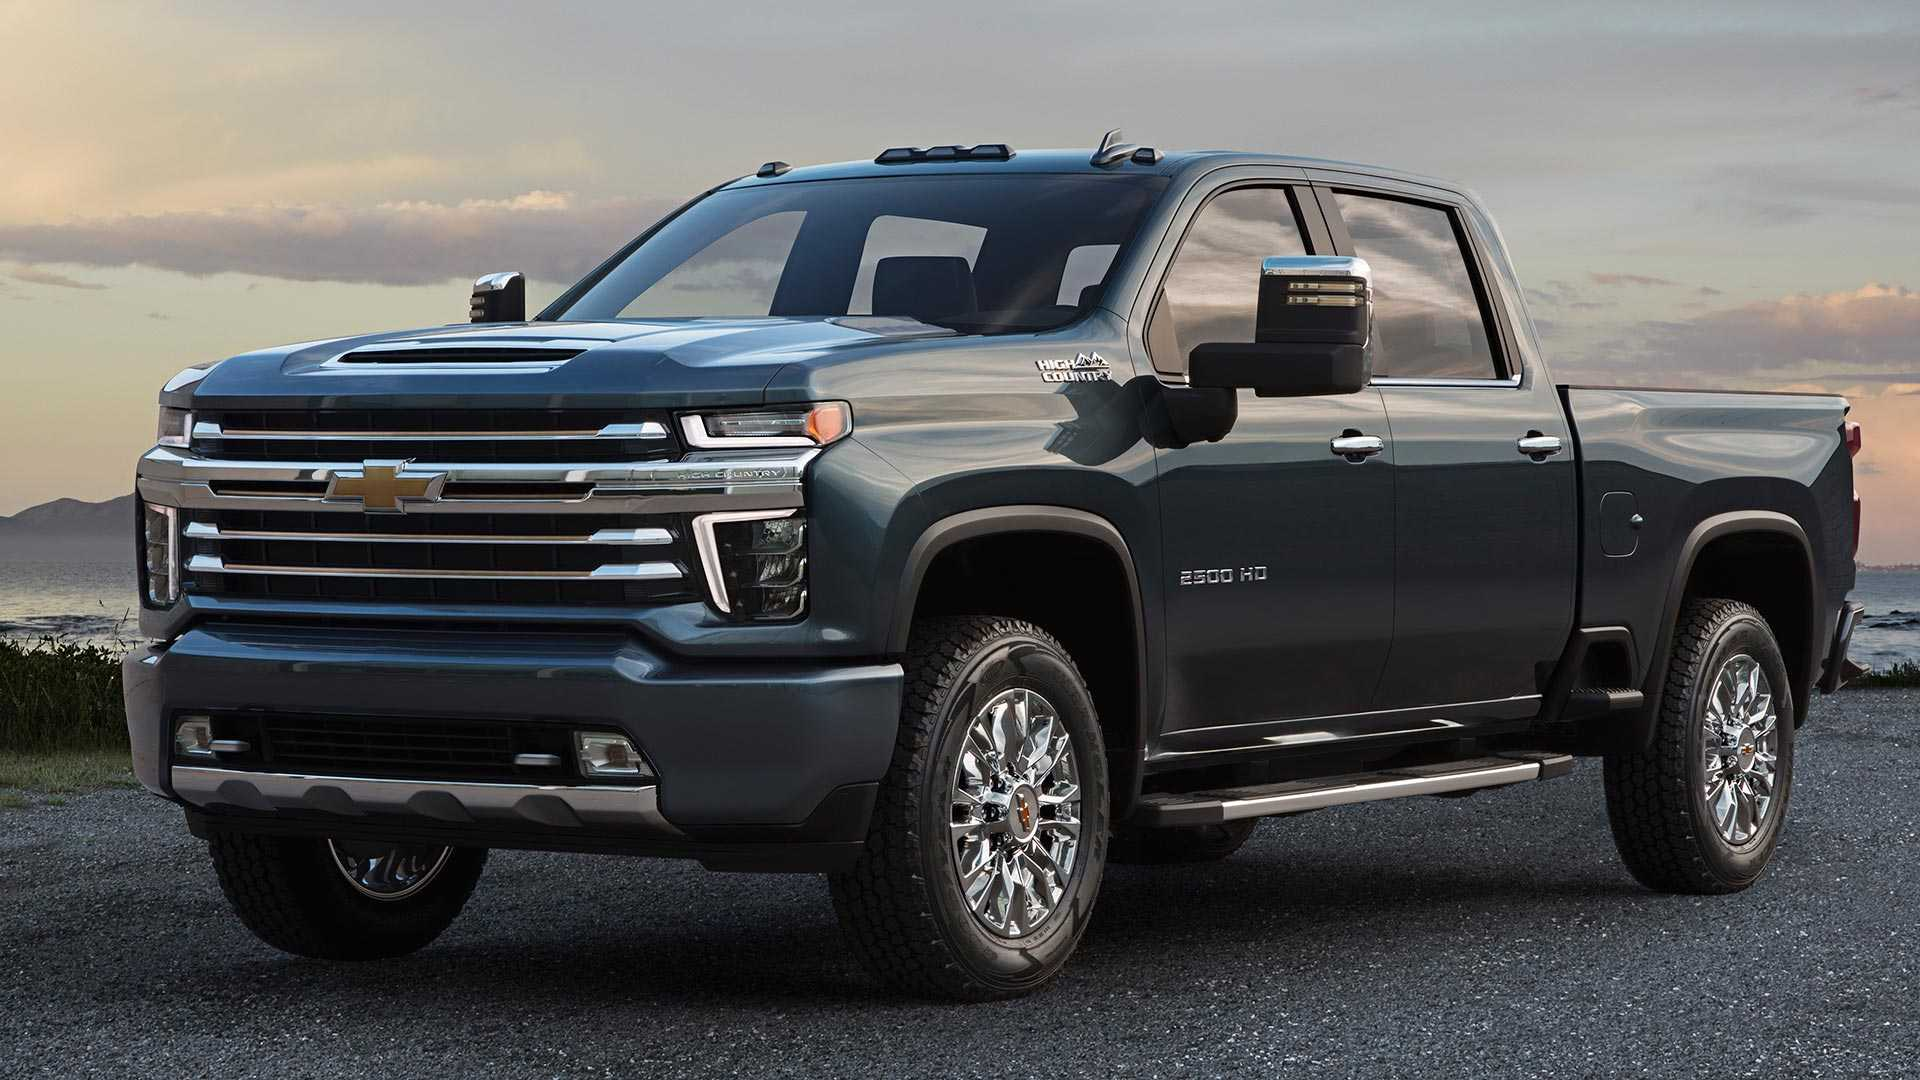 55 Gallery of Chevrolet High Country 2020 Pricing by Chevrolet High Country 2020